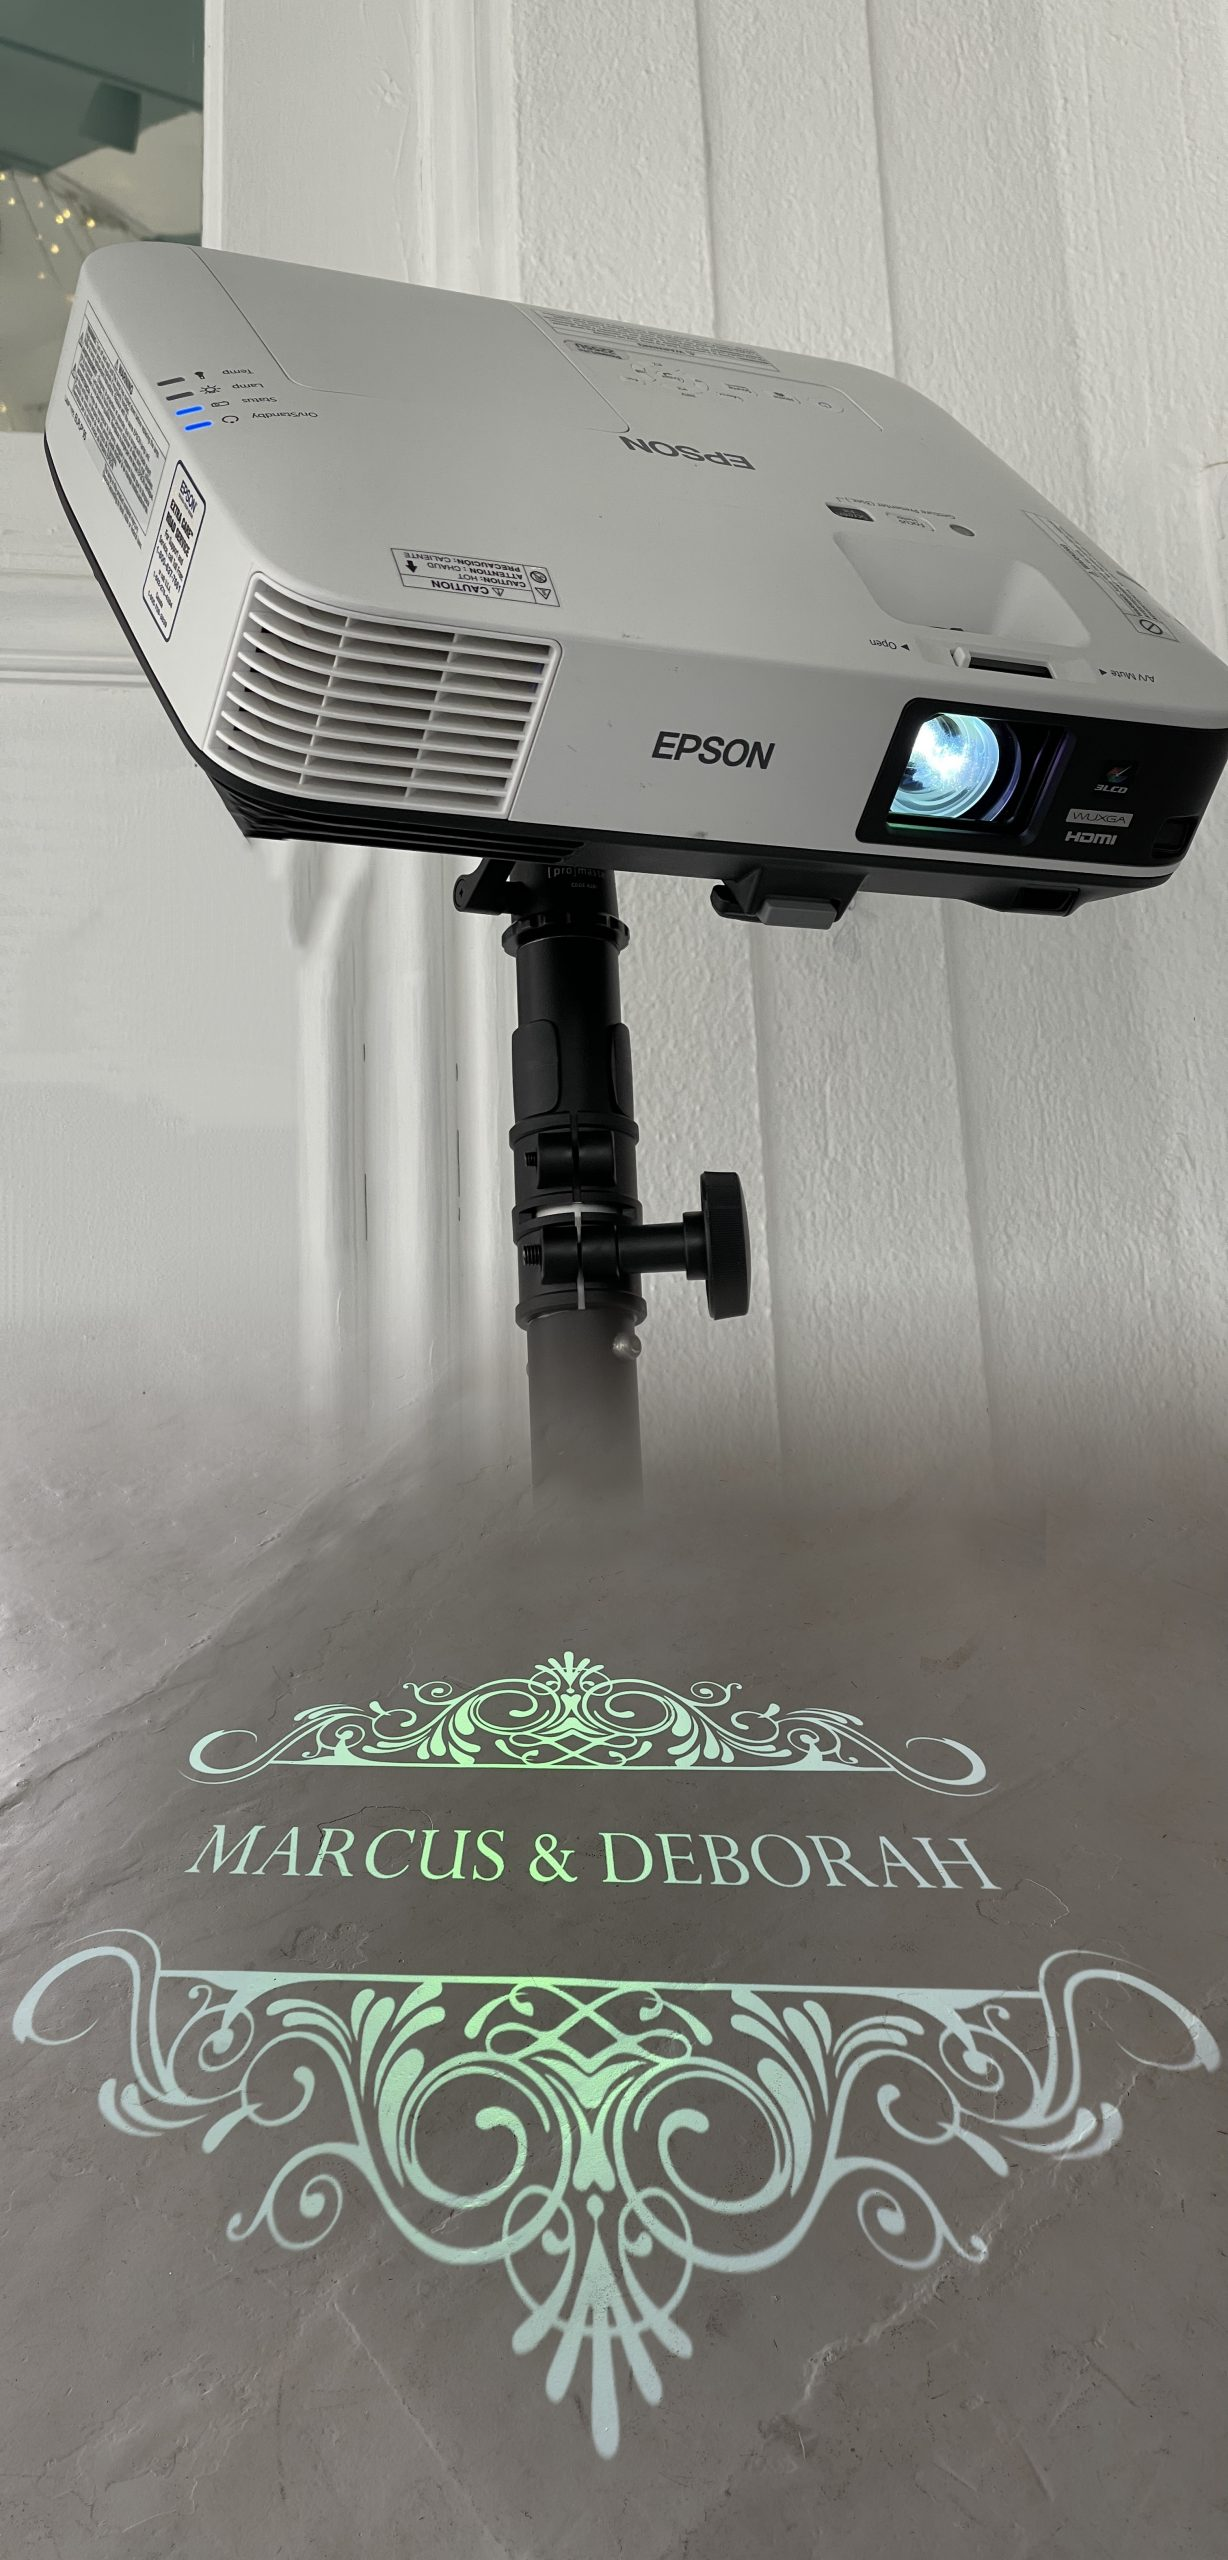 Projector images for weddings, parties, events.